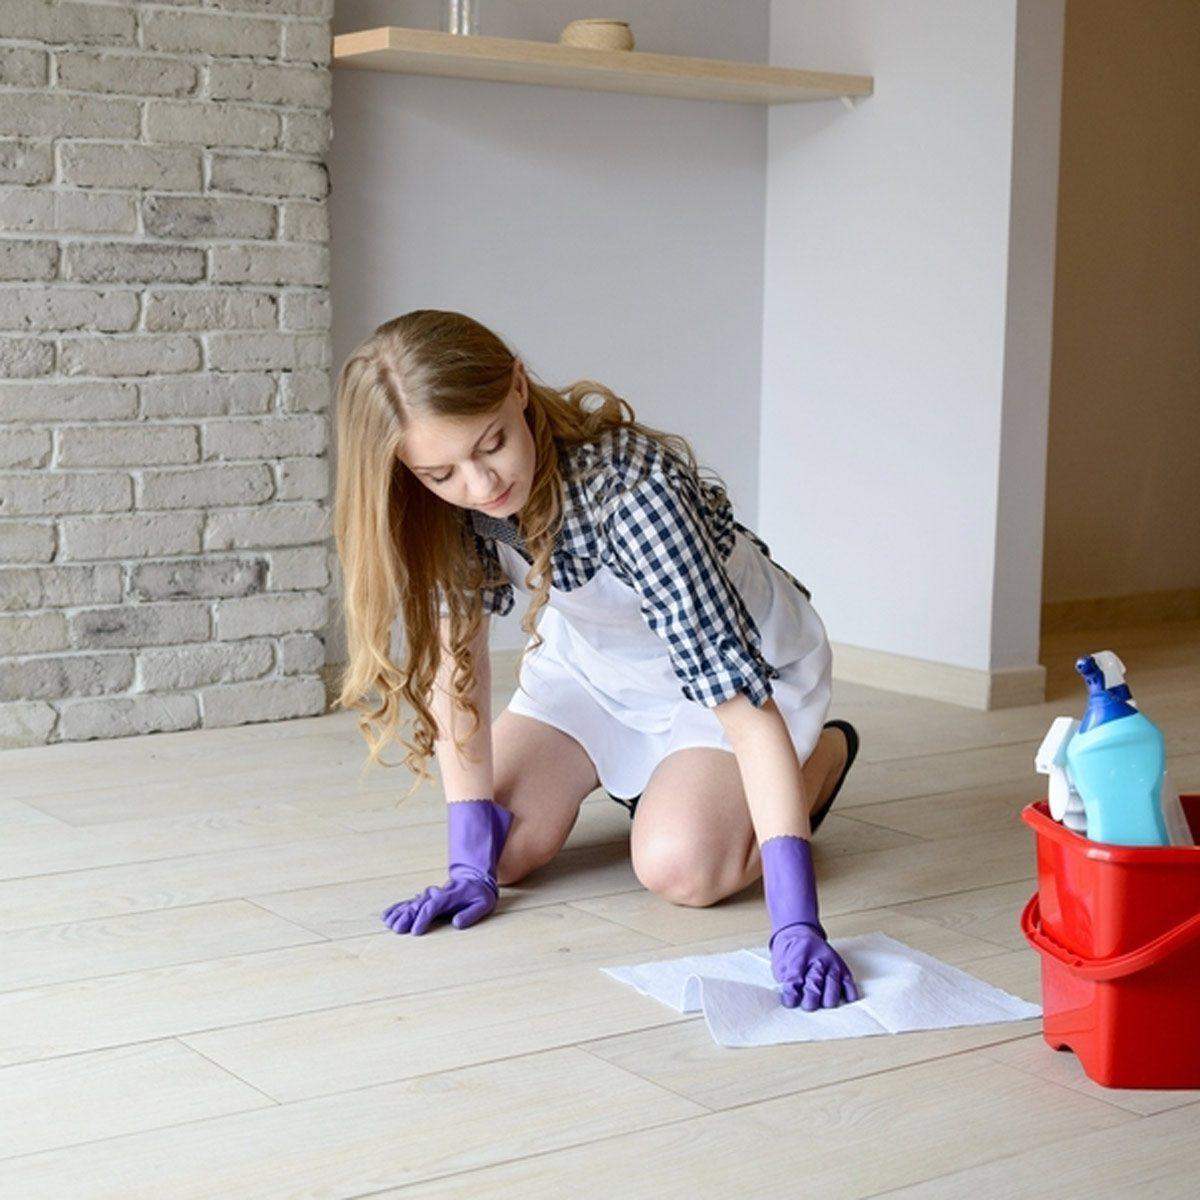 dfh5_shutterstock_366760406 clean the wood floor finish restorer